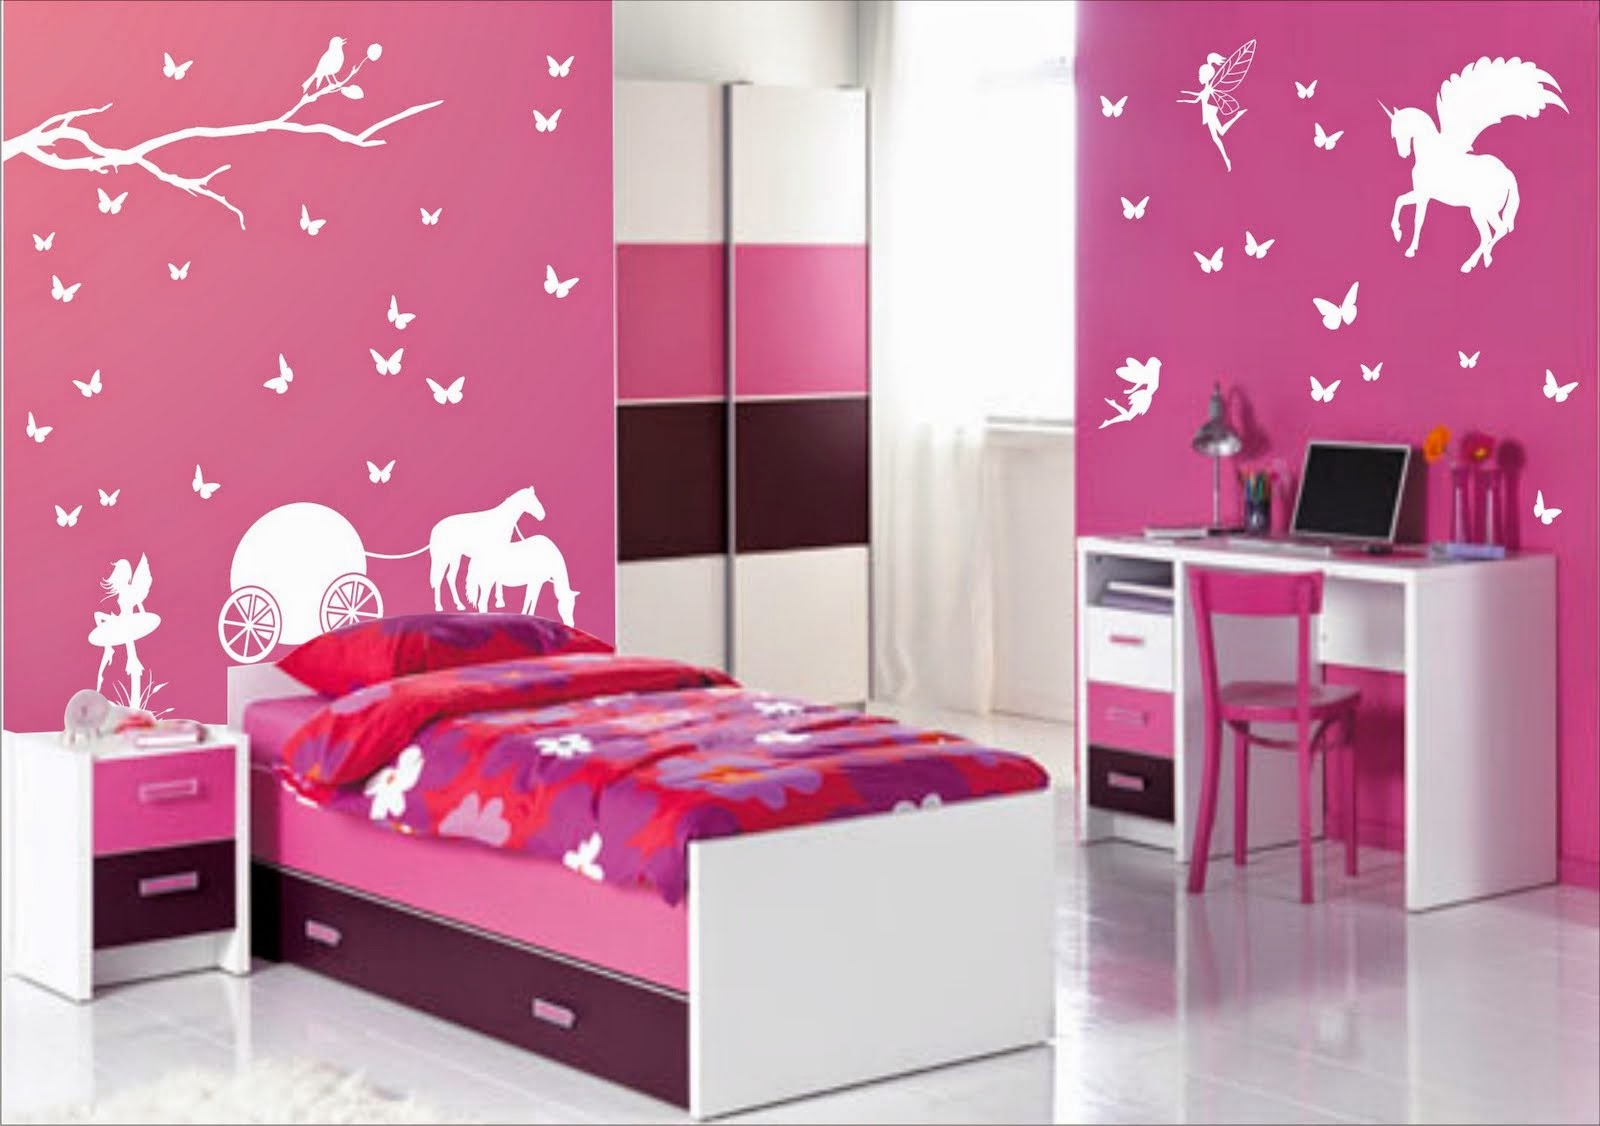 Toddler girl room ideas pink Girls bedroom